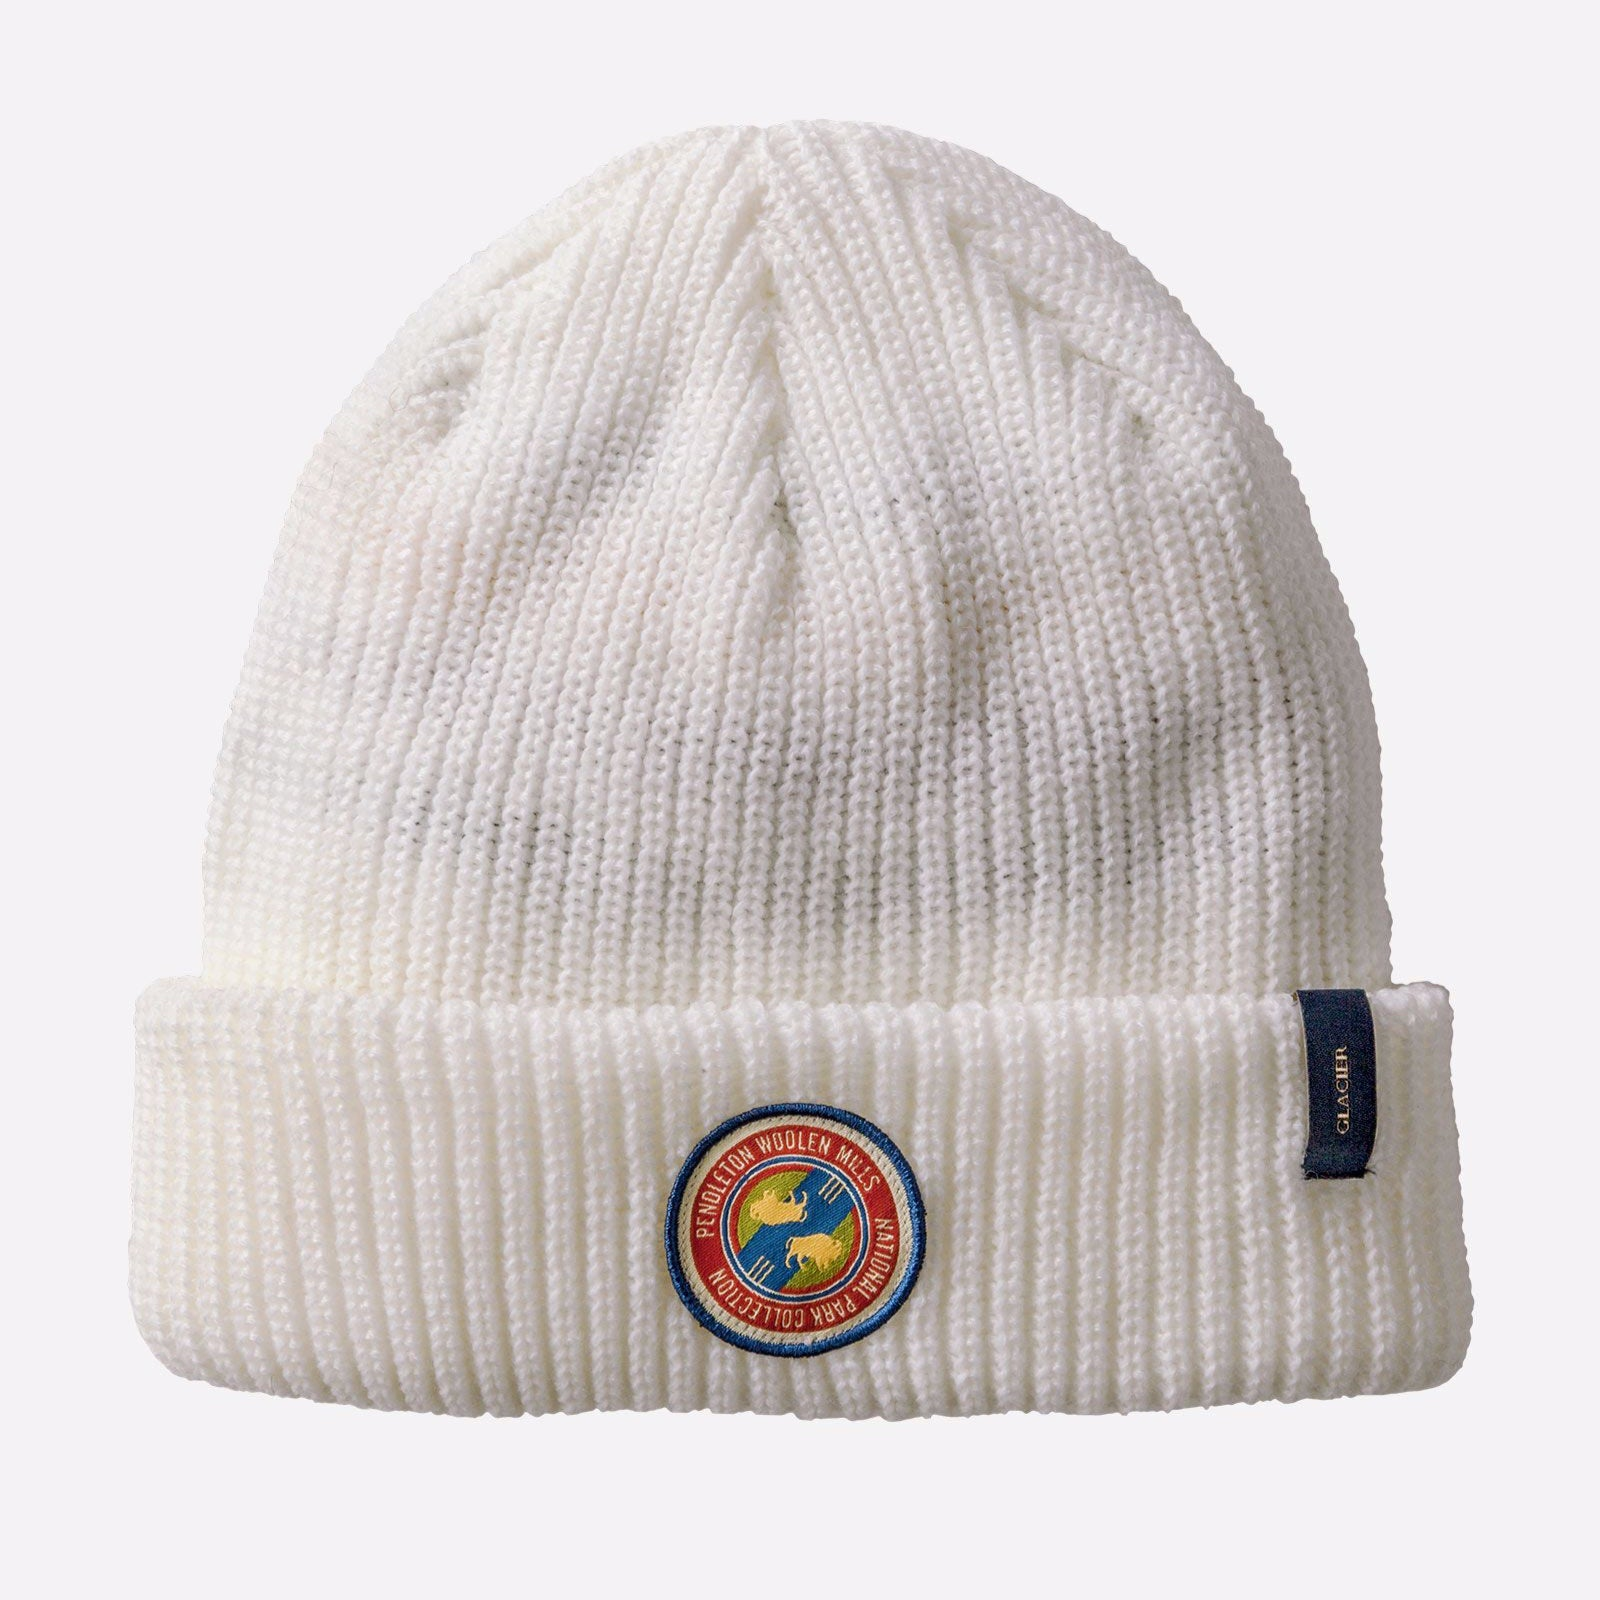 Pendleton National Park Beanie (Rev) Glacier Stripe